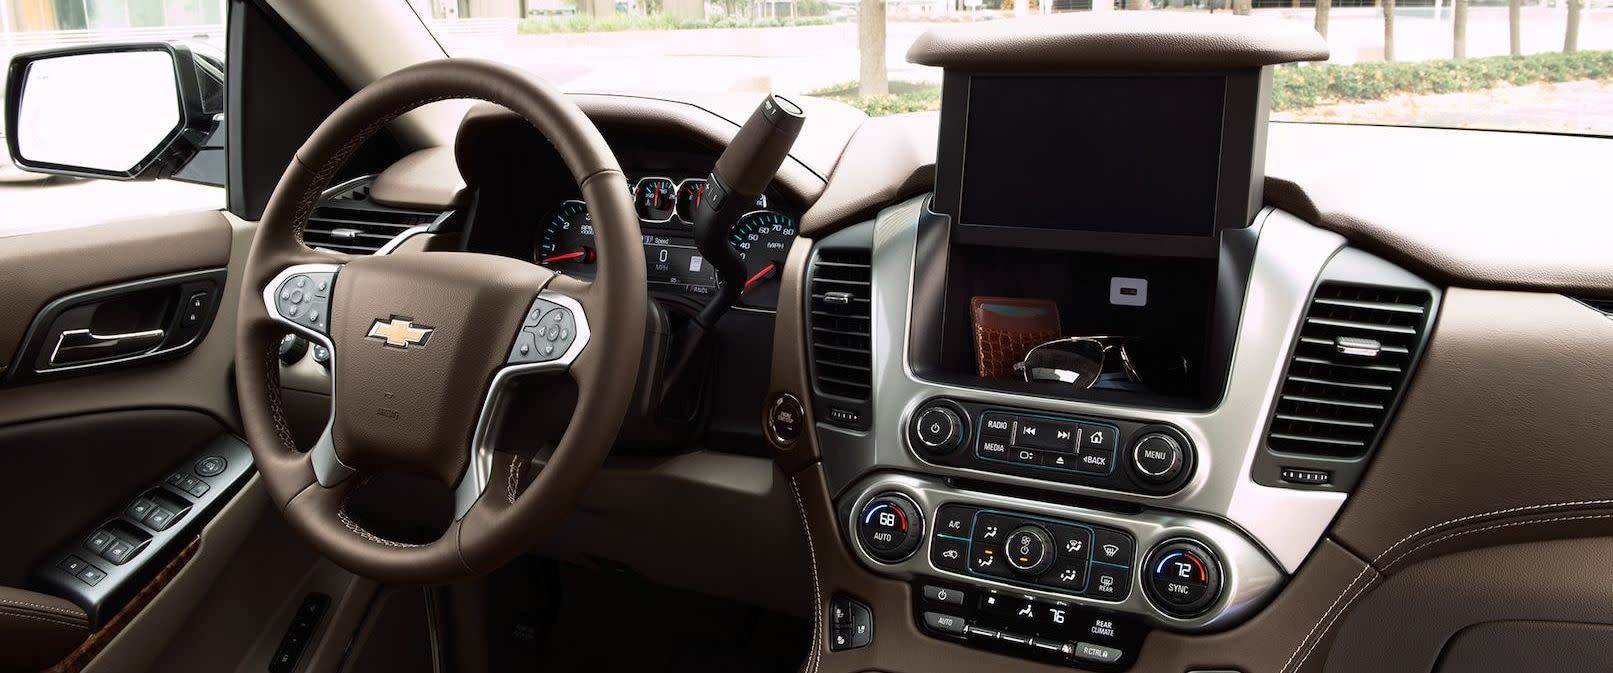 Step Inside the Chevy Tahoe!